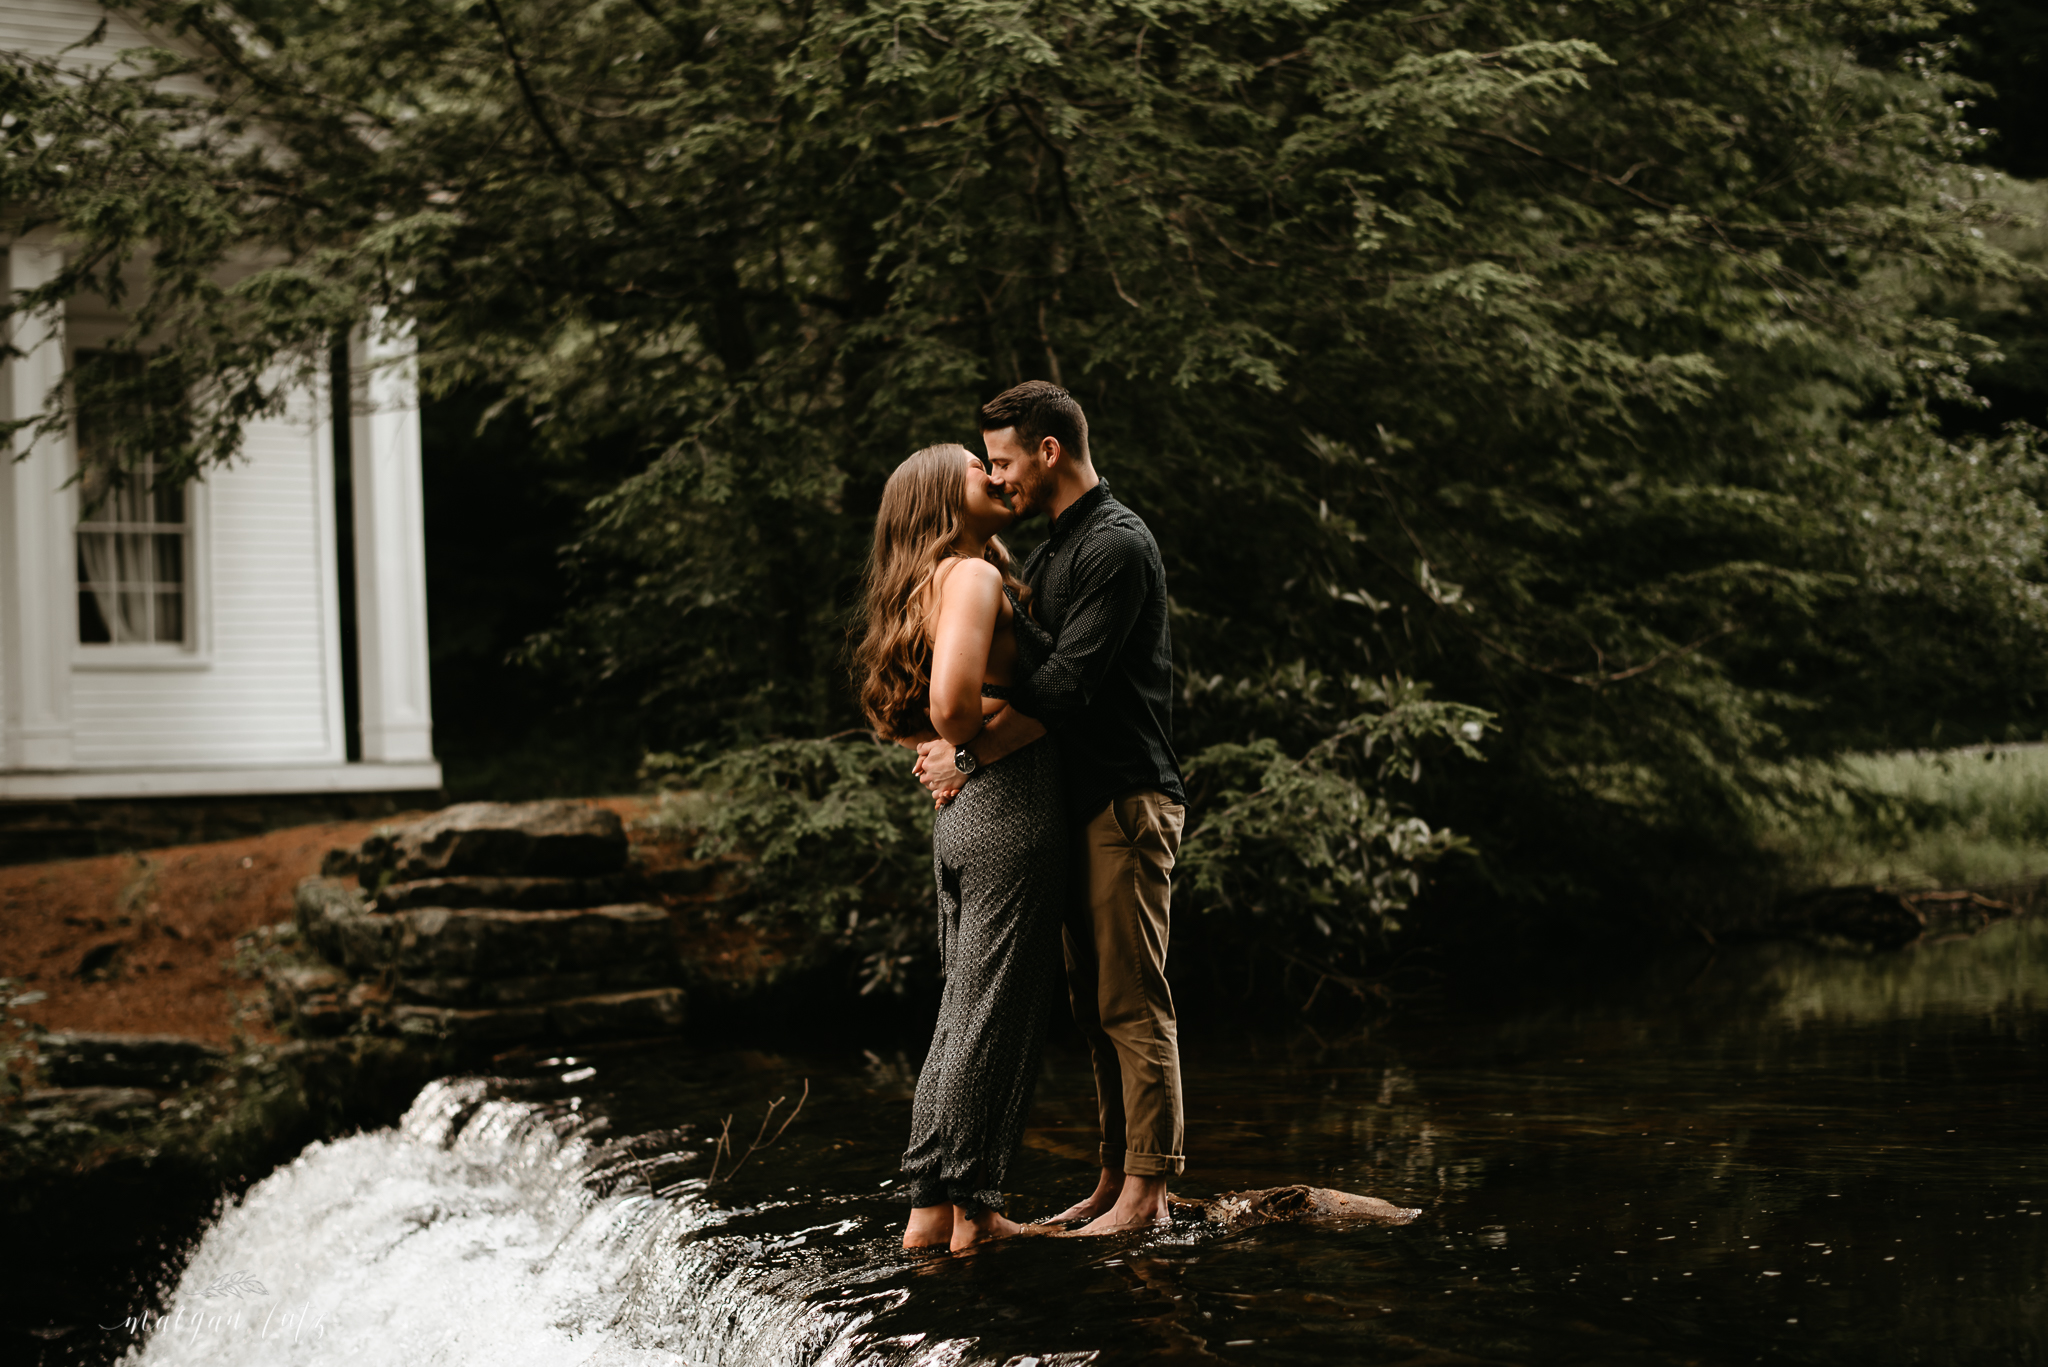 Trevor & Lacee - Engagement Session at Boulder Field, Hickory Run State Park